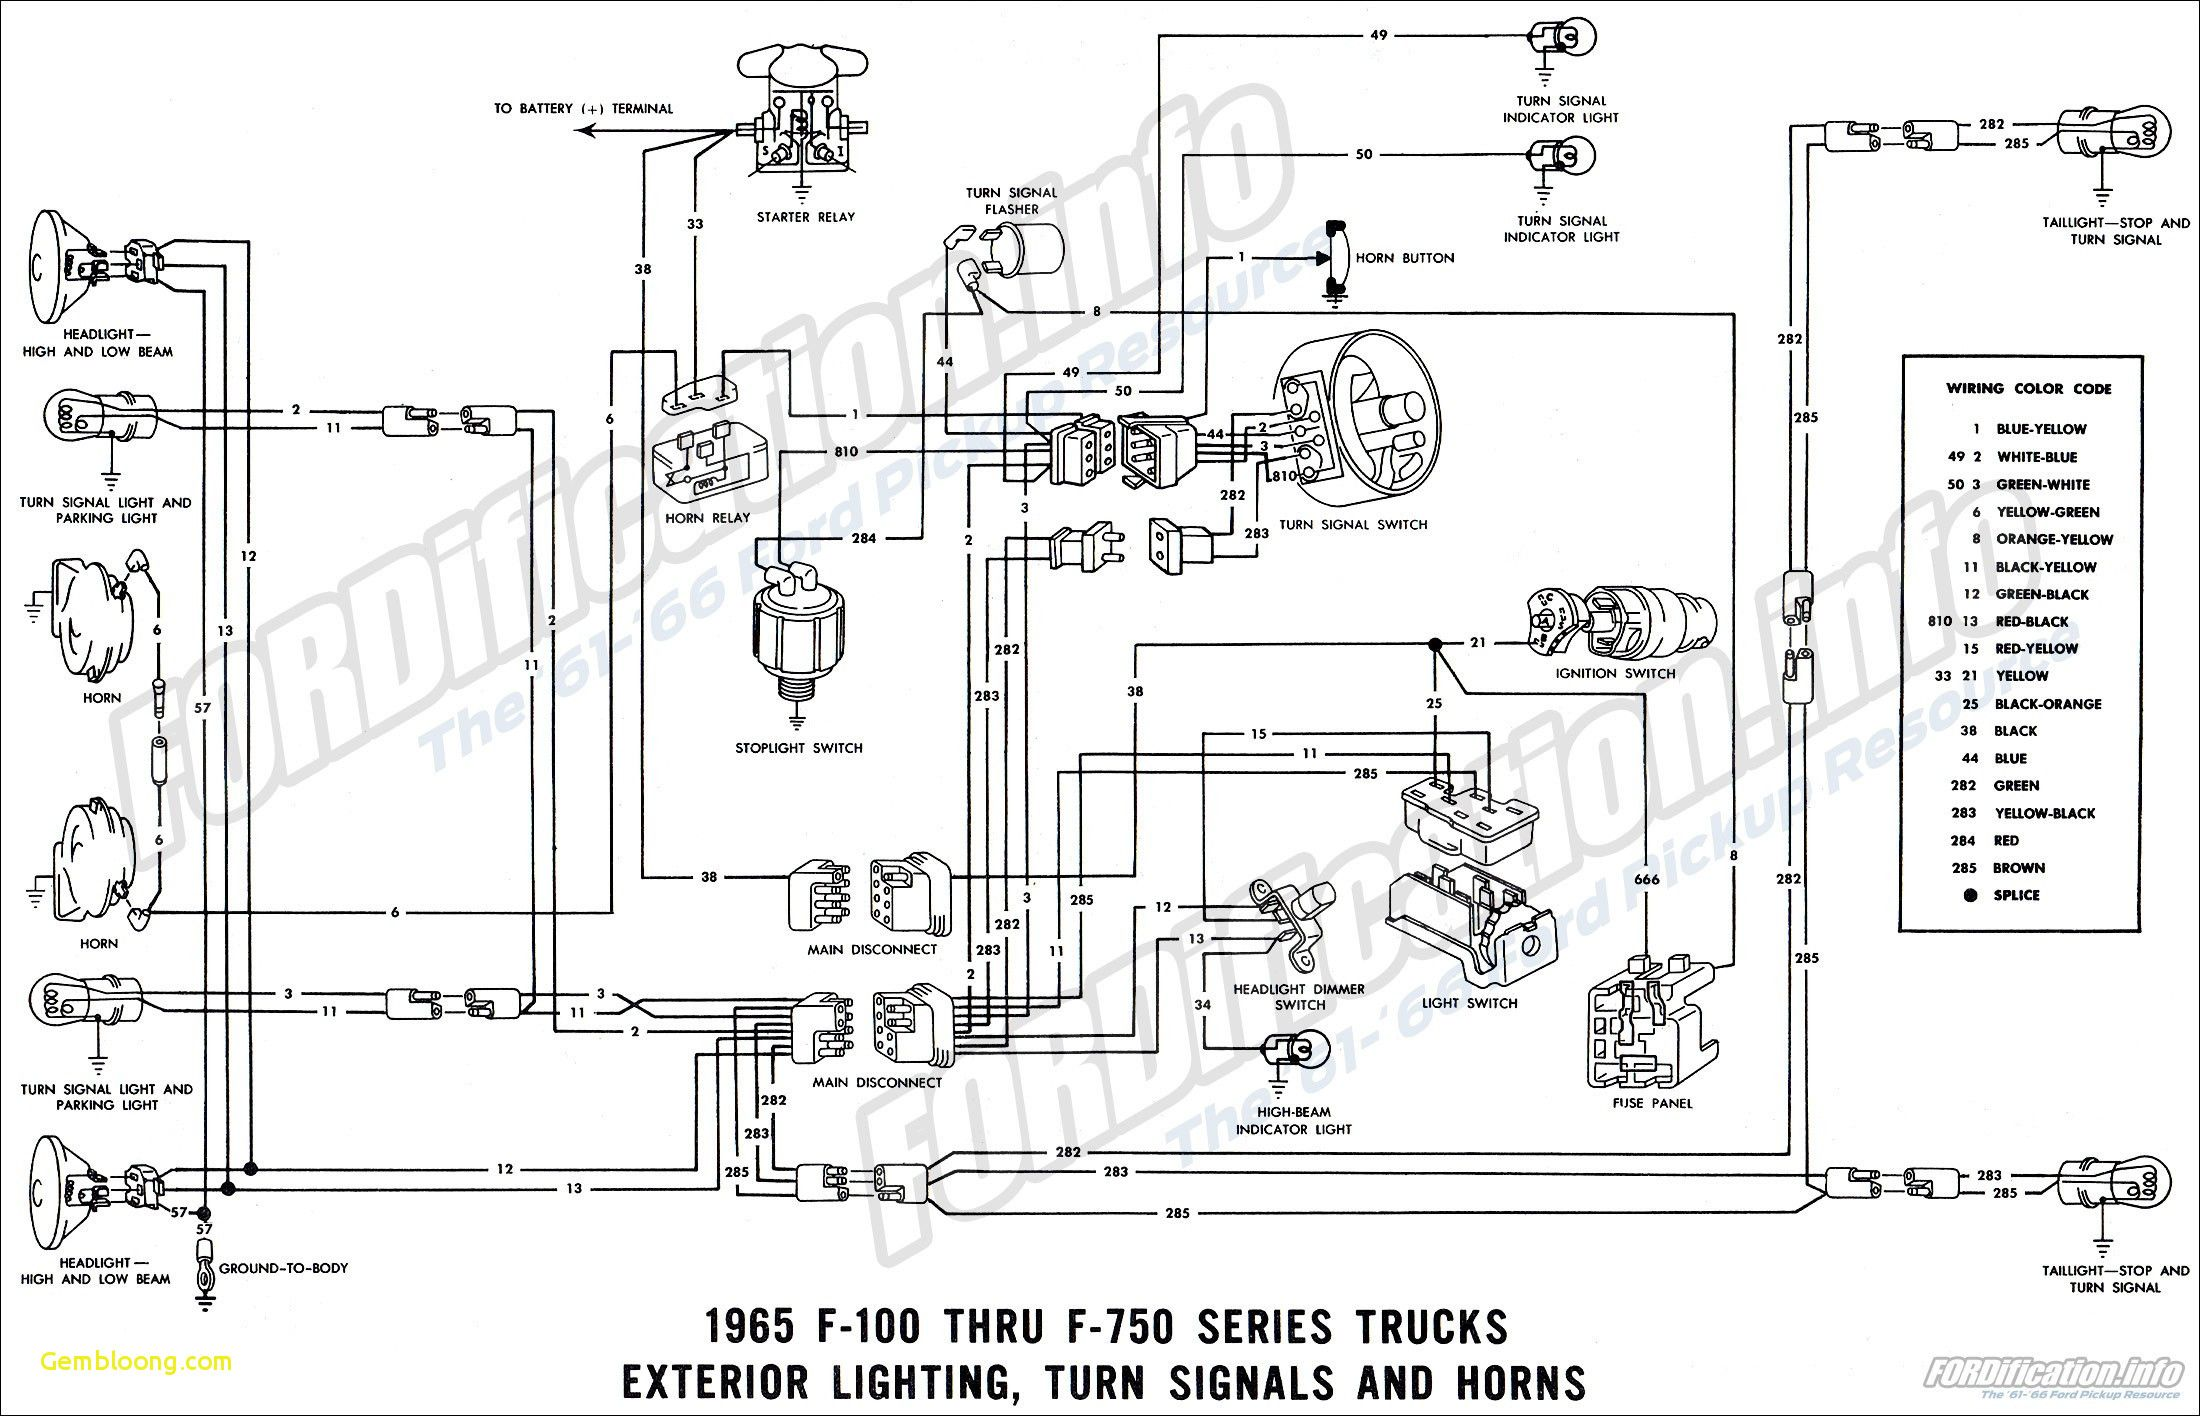 21 Ford Harness Wiring Diagram - bookingritzcarlton.info | Diagram,  Alternator, Ford | Ford F100 Turn Signal Wiring Diagrams |  | Pinterest